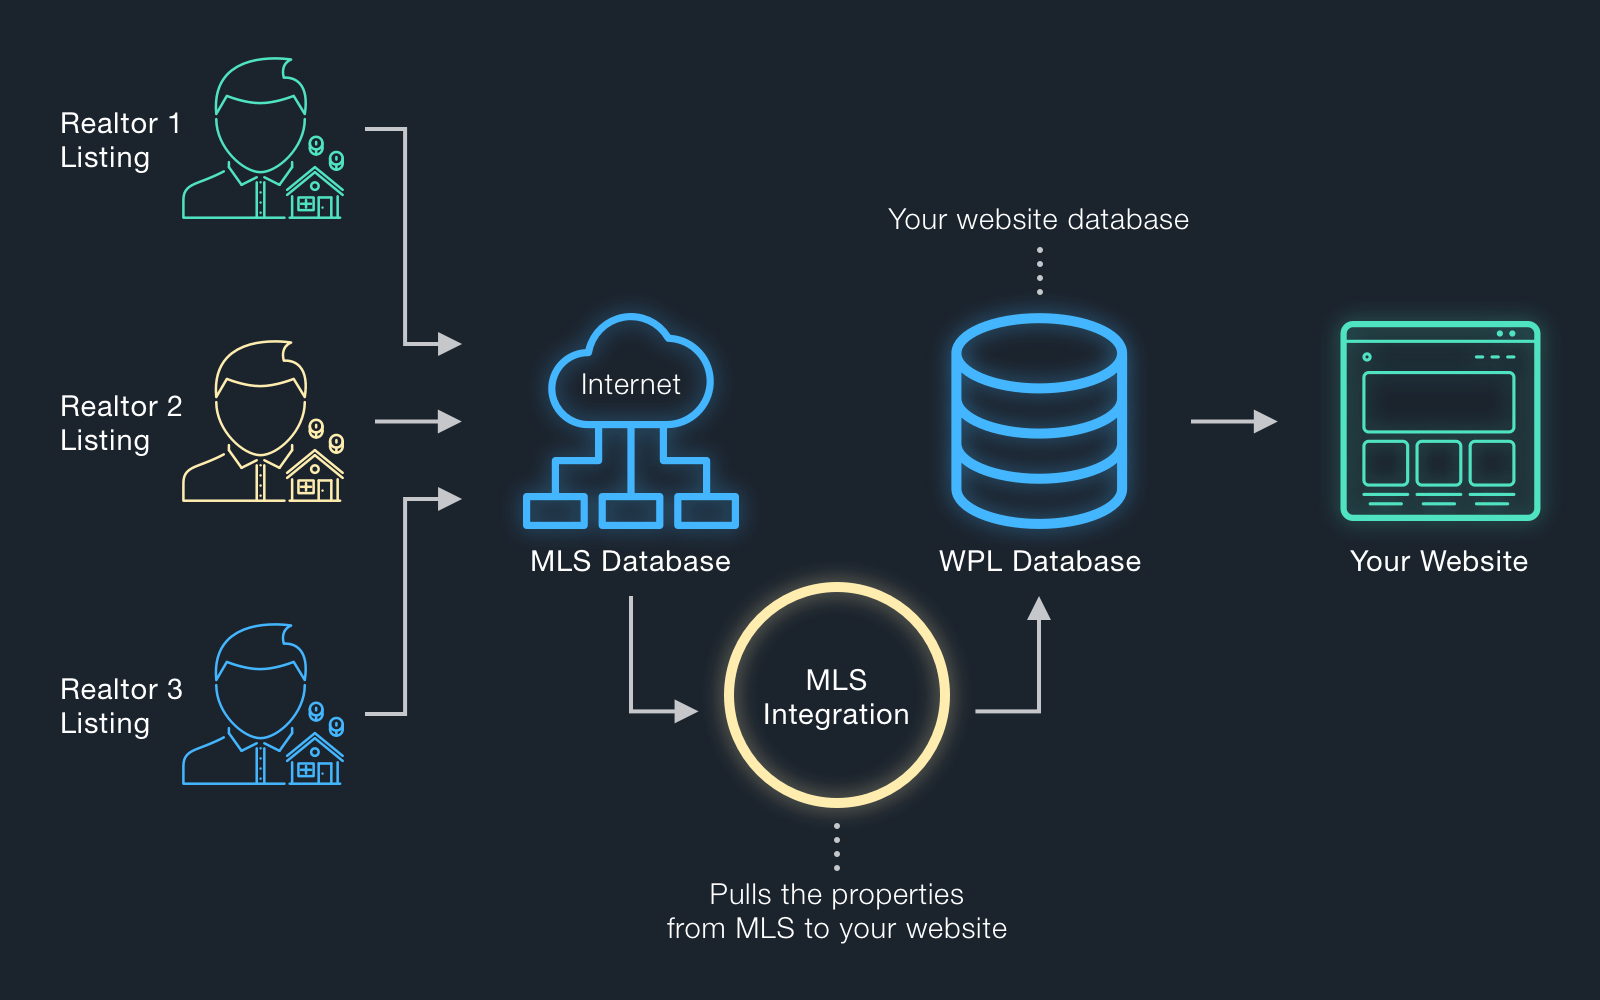 How MLS integration works without API realty